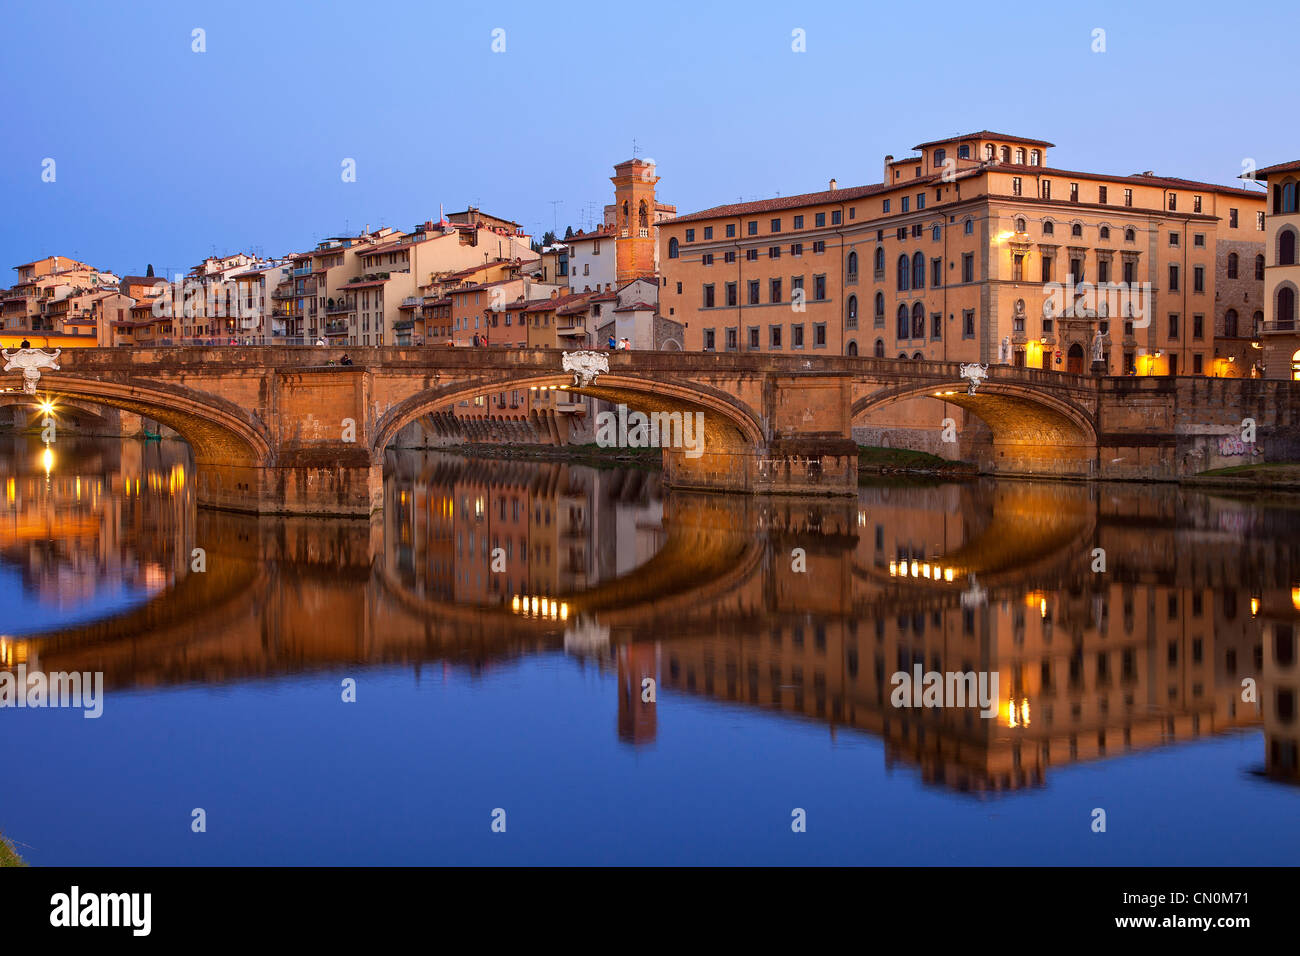 Europe, Italy, Florence, the Arno River and Riverbank at Dusk - Stock Image